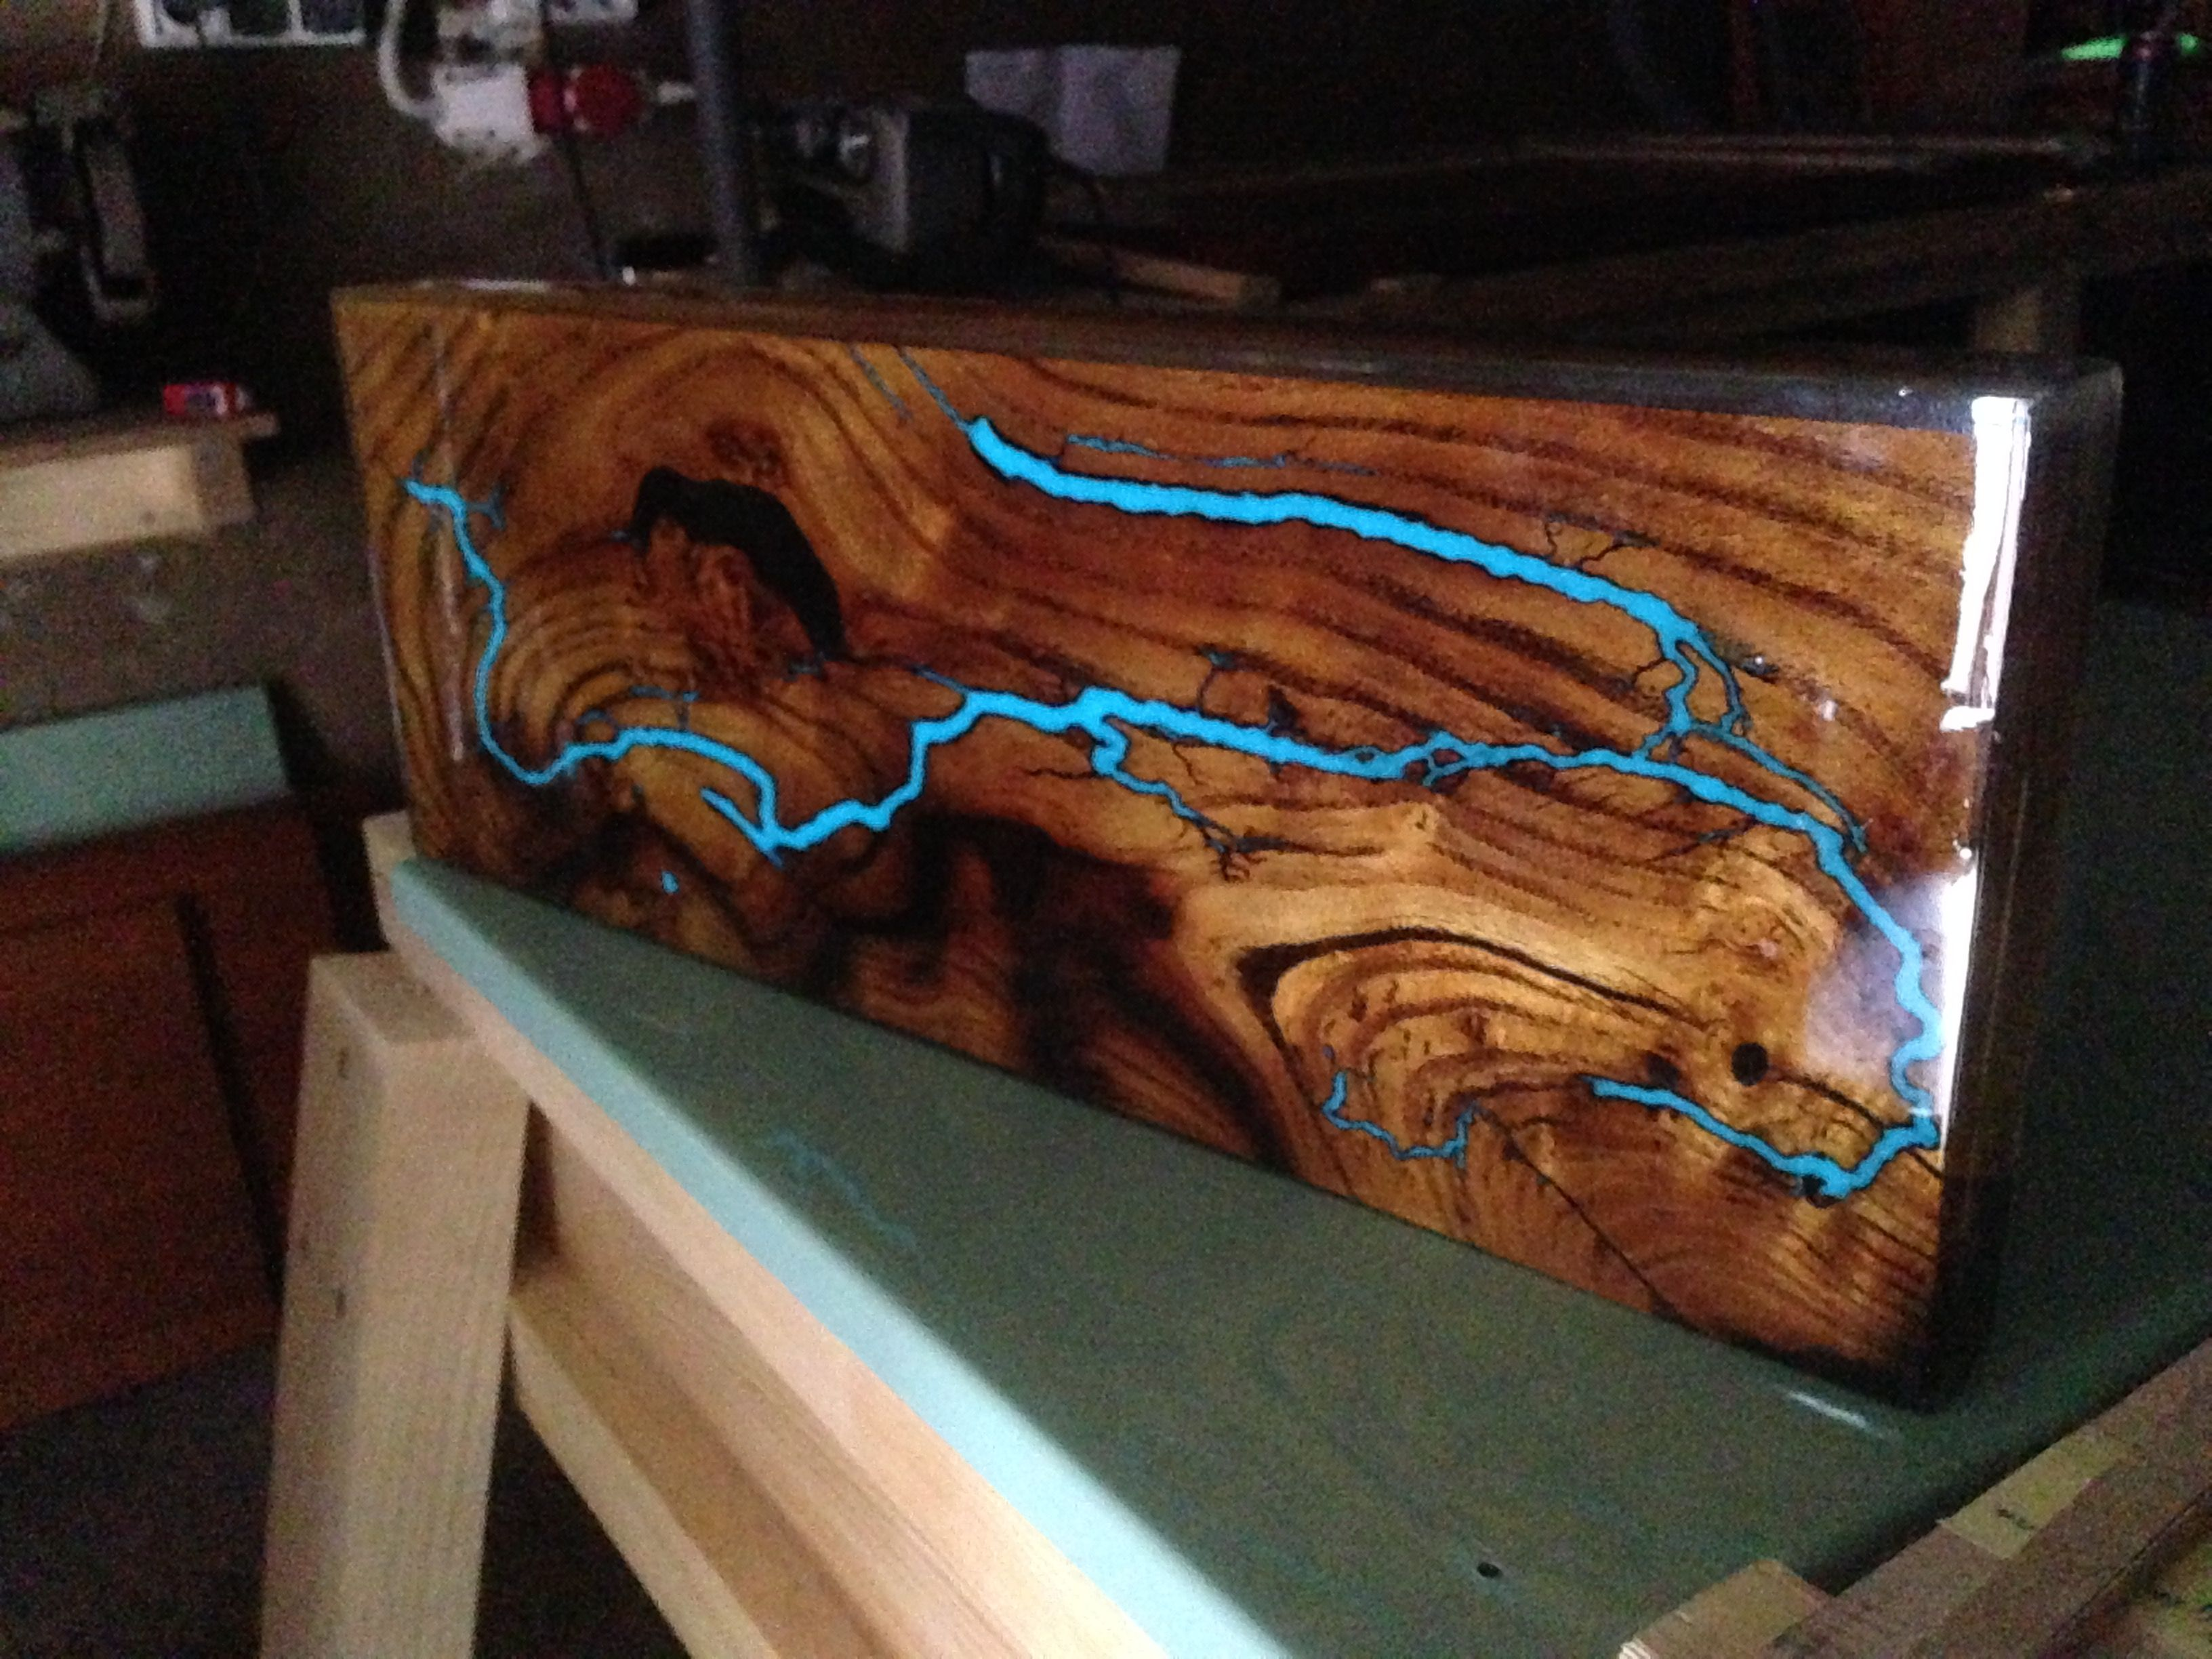 Pin by Valentino Banini on Epoxy resin | Pinterest | Woodwork ... for Epoxy Resin Wood Art  55jwn